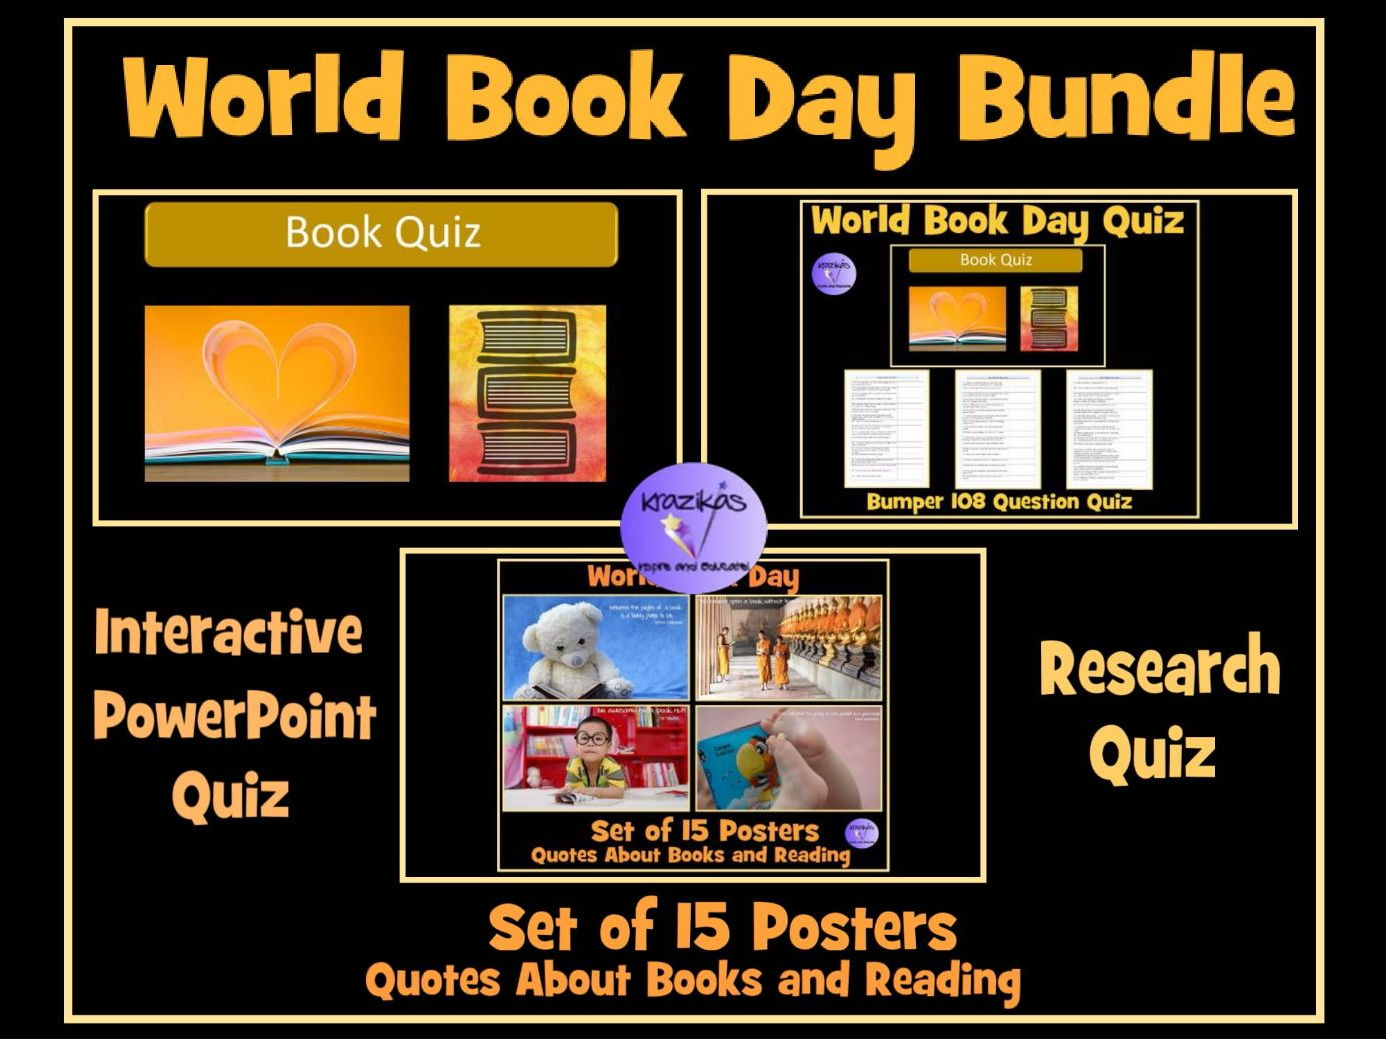 World Book Day Bundle - Bumper 100 Question Interactive PowerPoint Quiz, 108 Question Research Quiz and Set of 15 Book Quote Posters